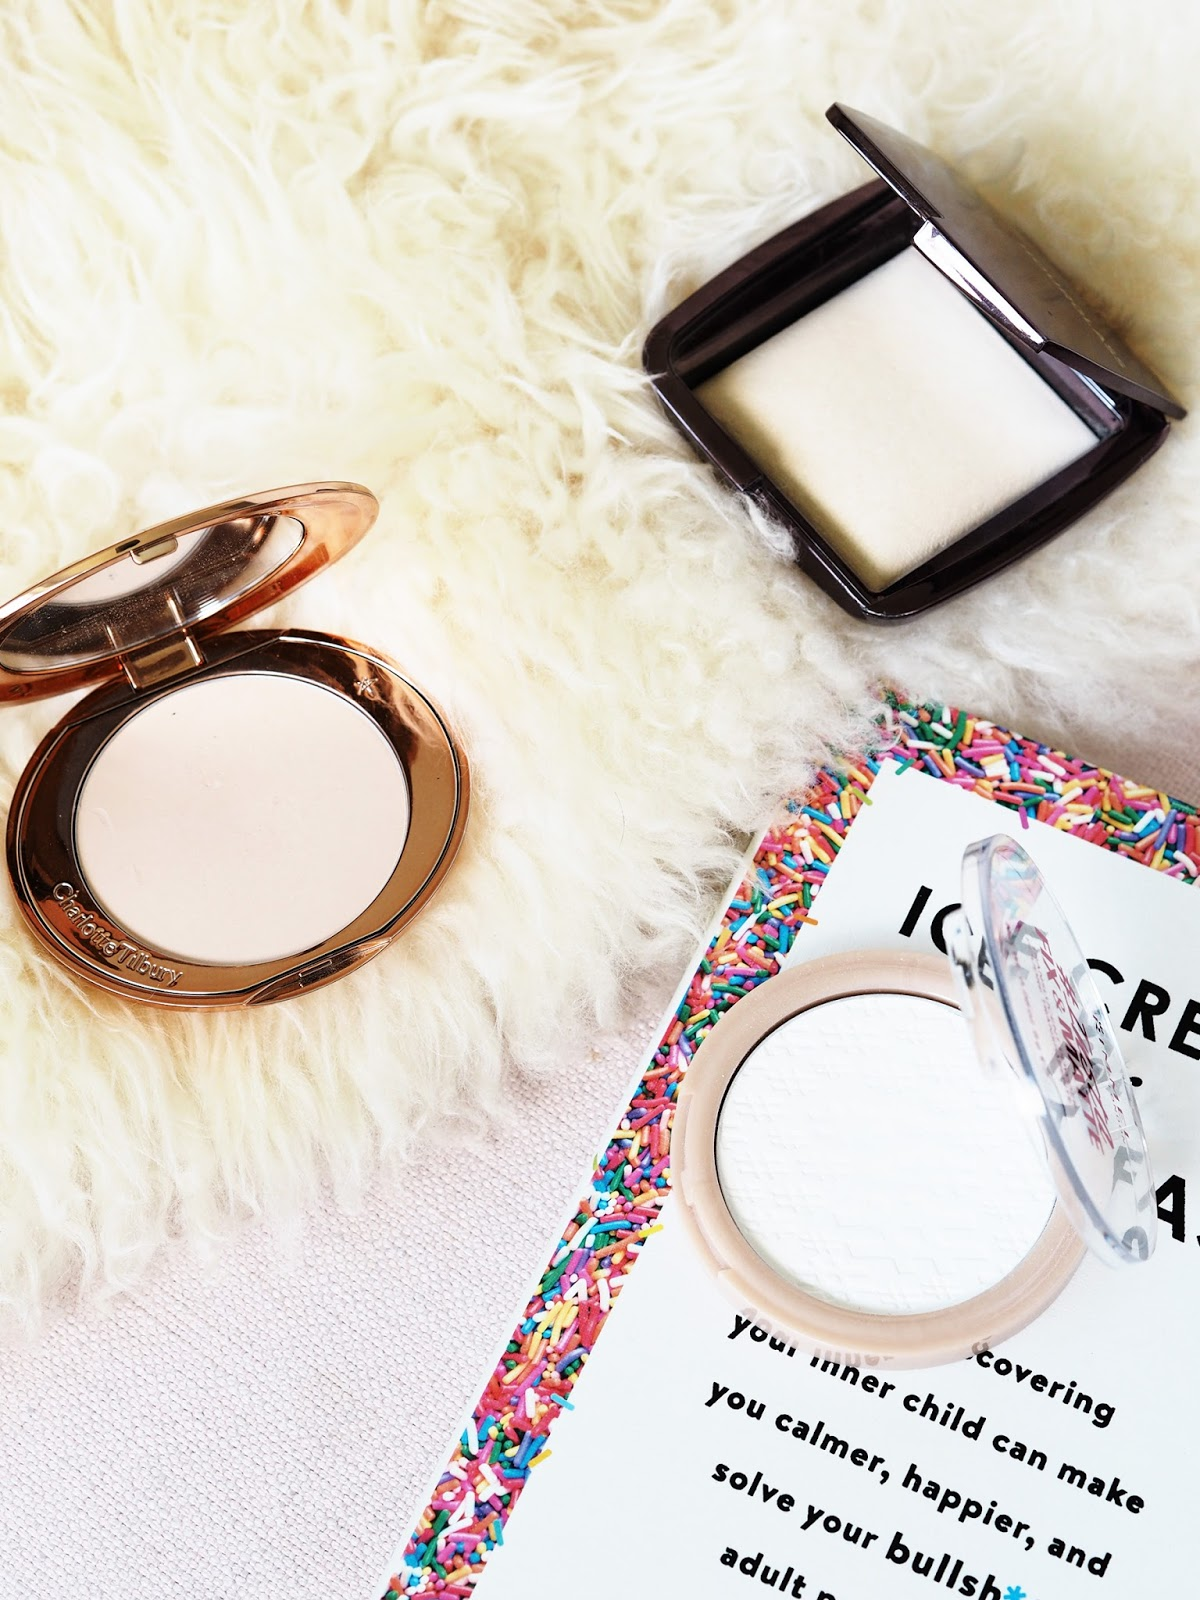 Face powders for dry skin